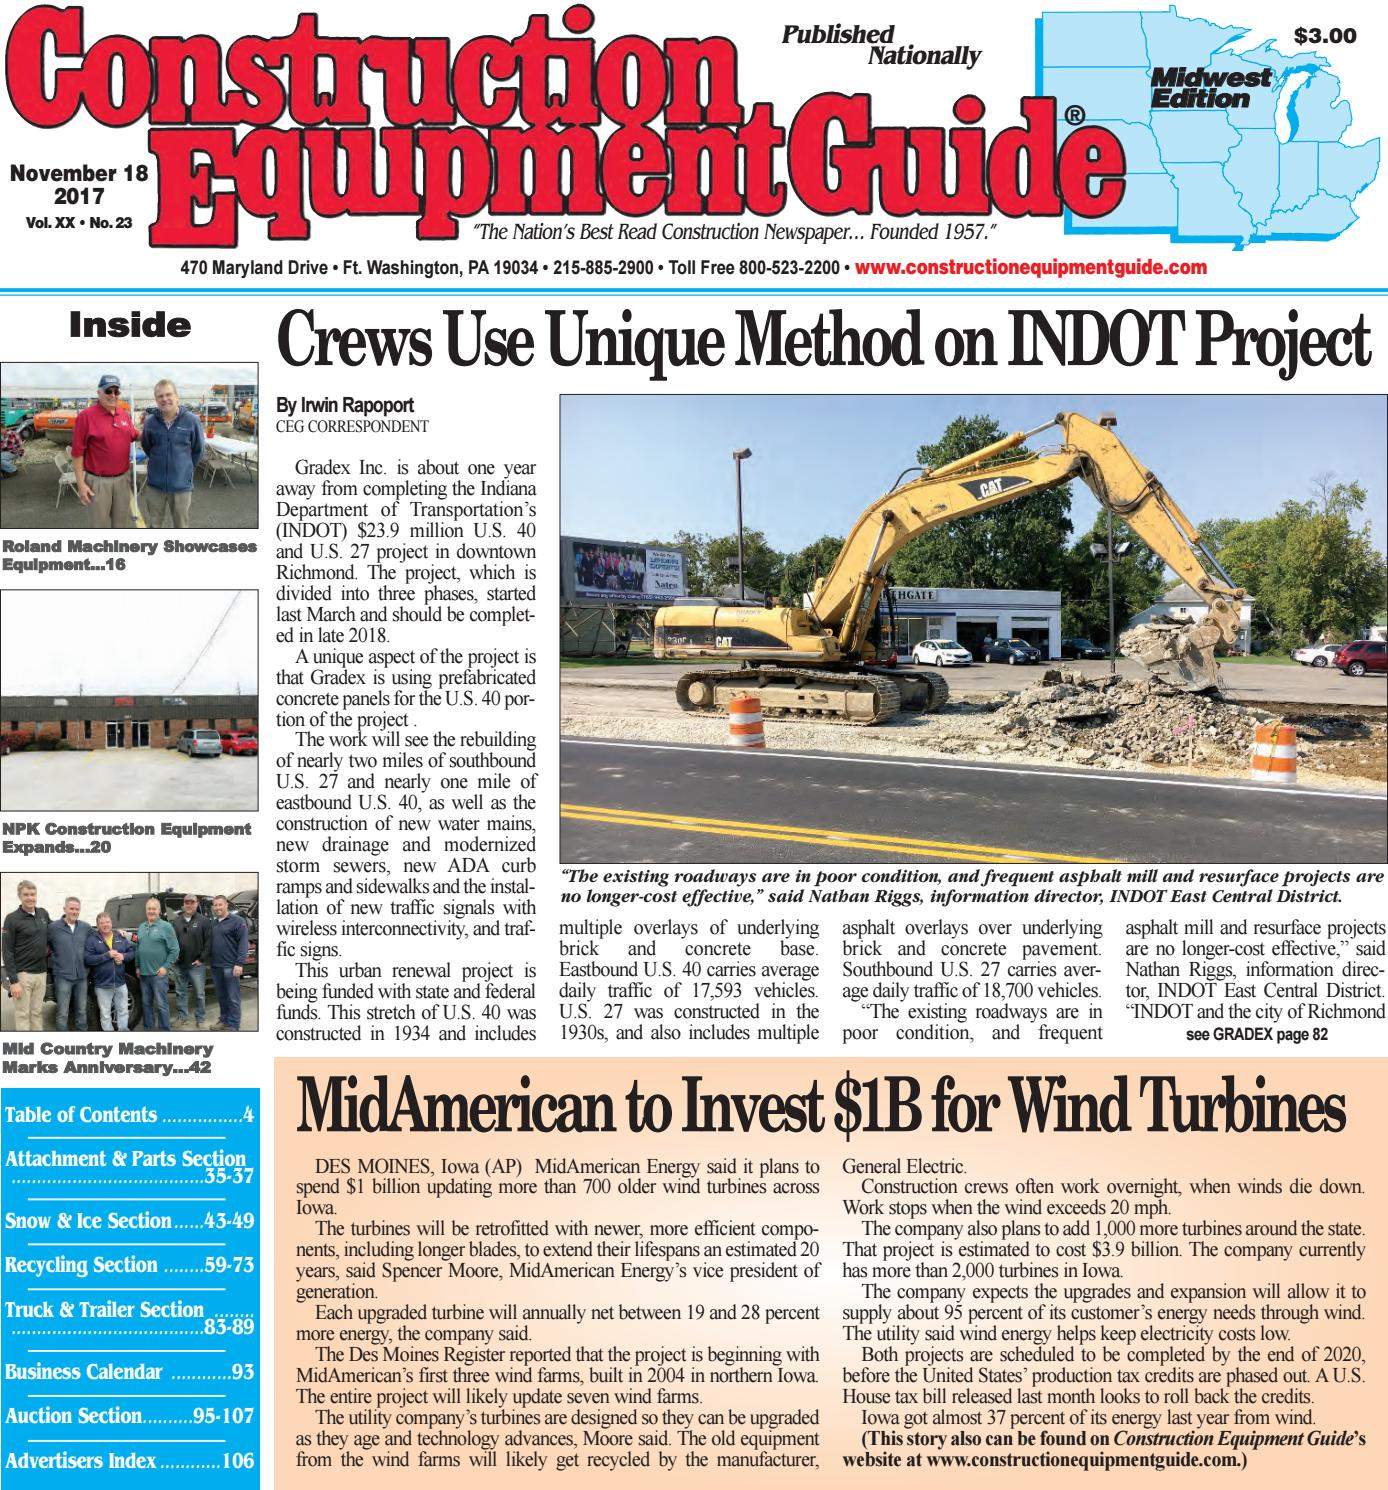 Midwest 23, November 18, 2017 by Construction Equipment